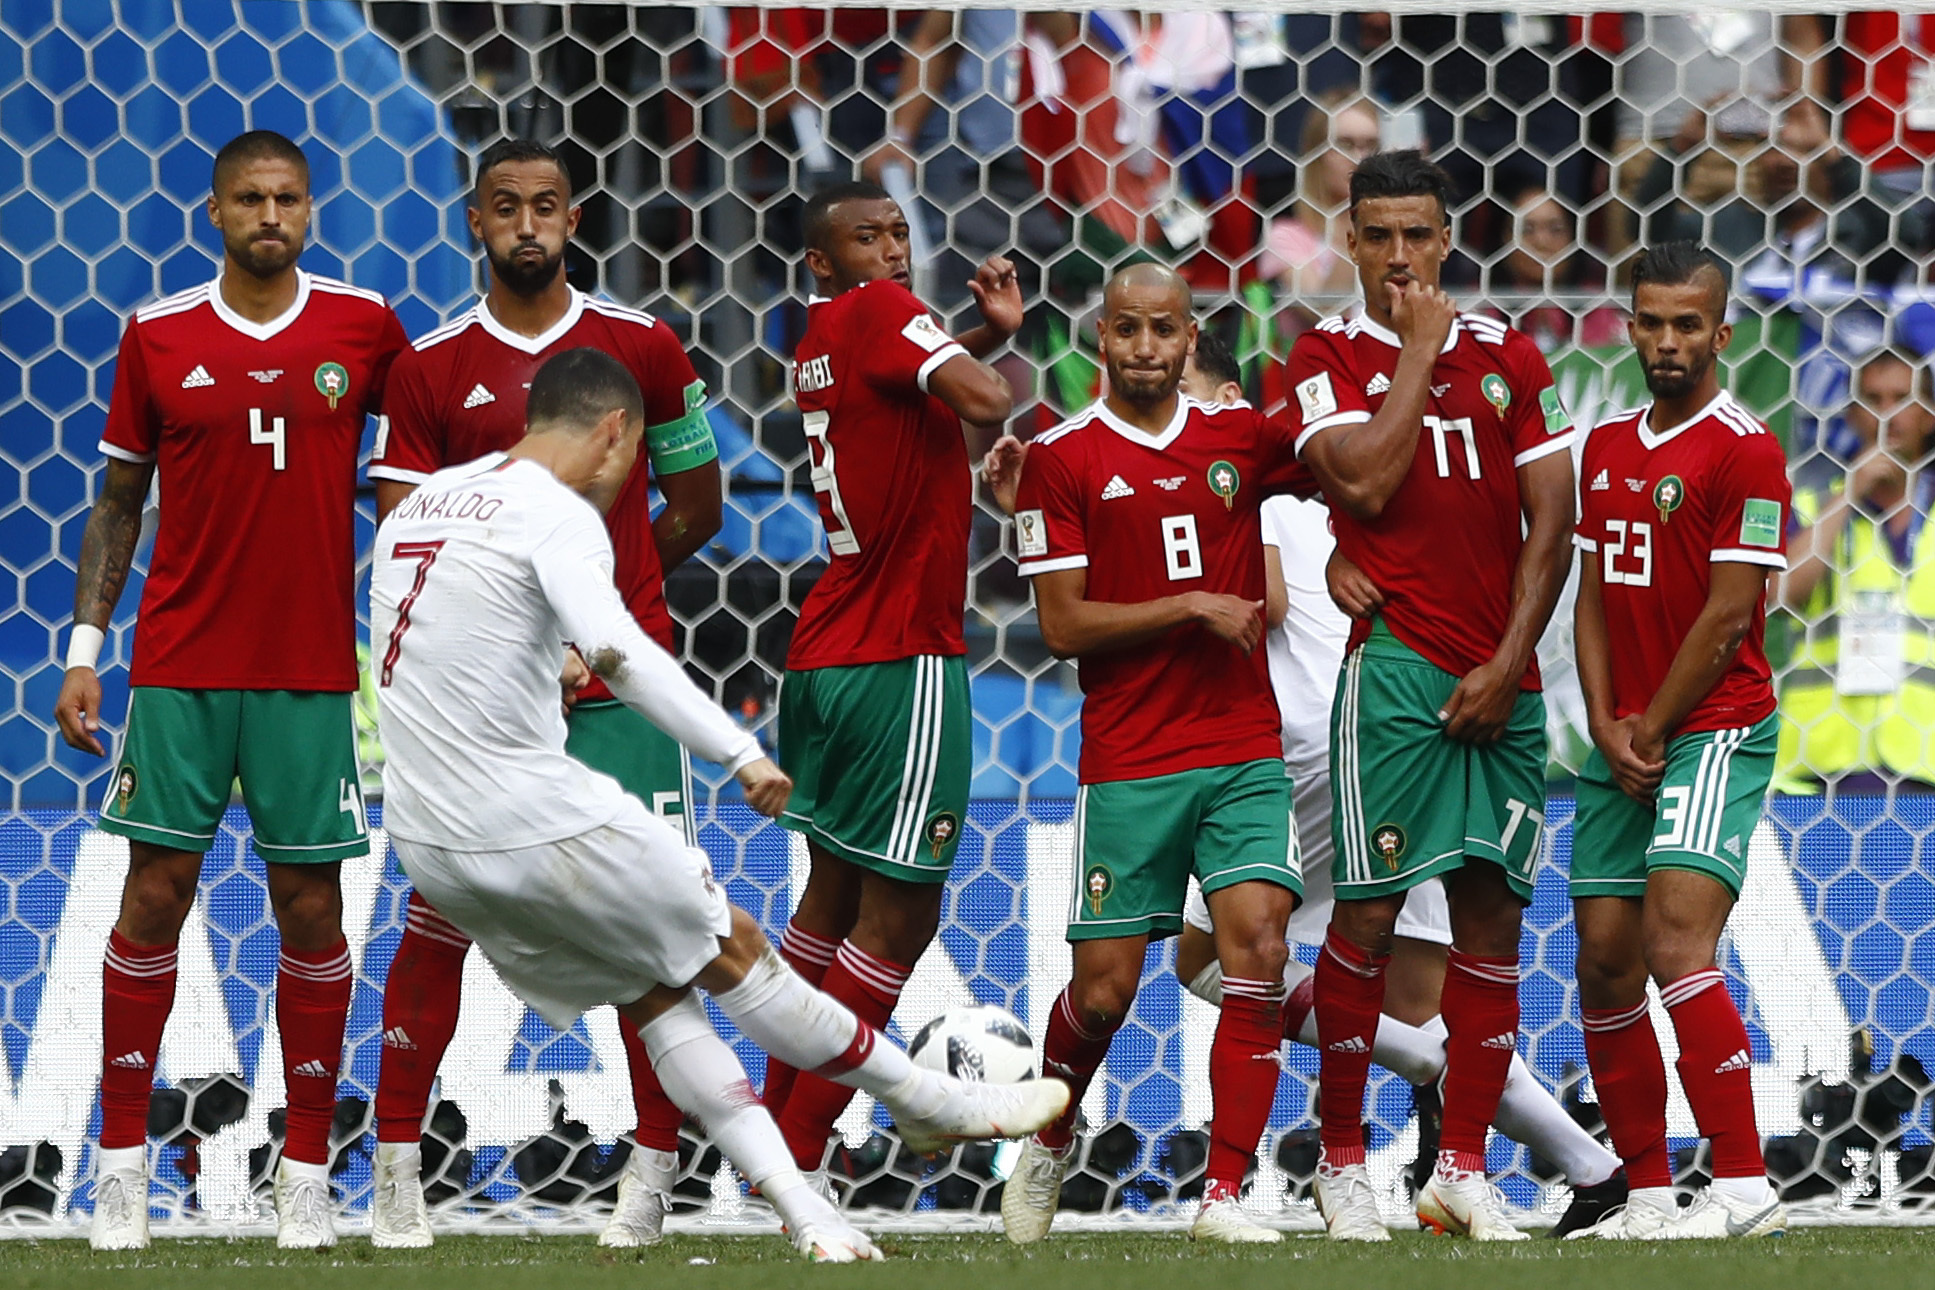 "<div class=""meta image-caption""><div class=""origin-logo origin-image none""><span>none</span></div><span class=""caption-text"">Portugal's Cristiano Ronaldo takes a free kick during the group B match between Portugal and Morocco  in the Luzhniki Stadium in Moscow, Russia, Wednesday, June 20, 2018. (Matthias Schrader/AP Photo)</span></div>"